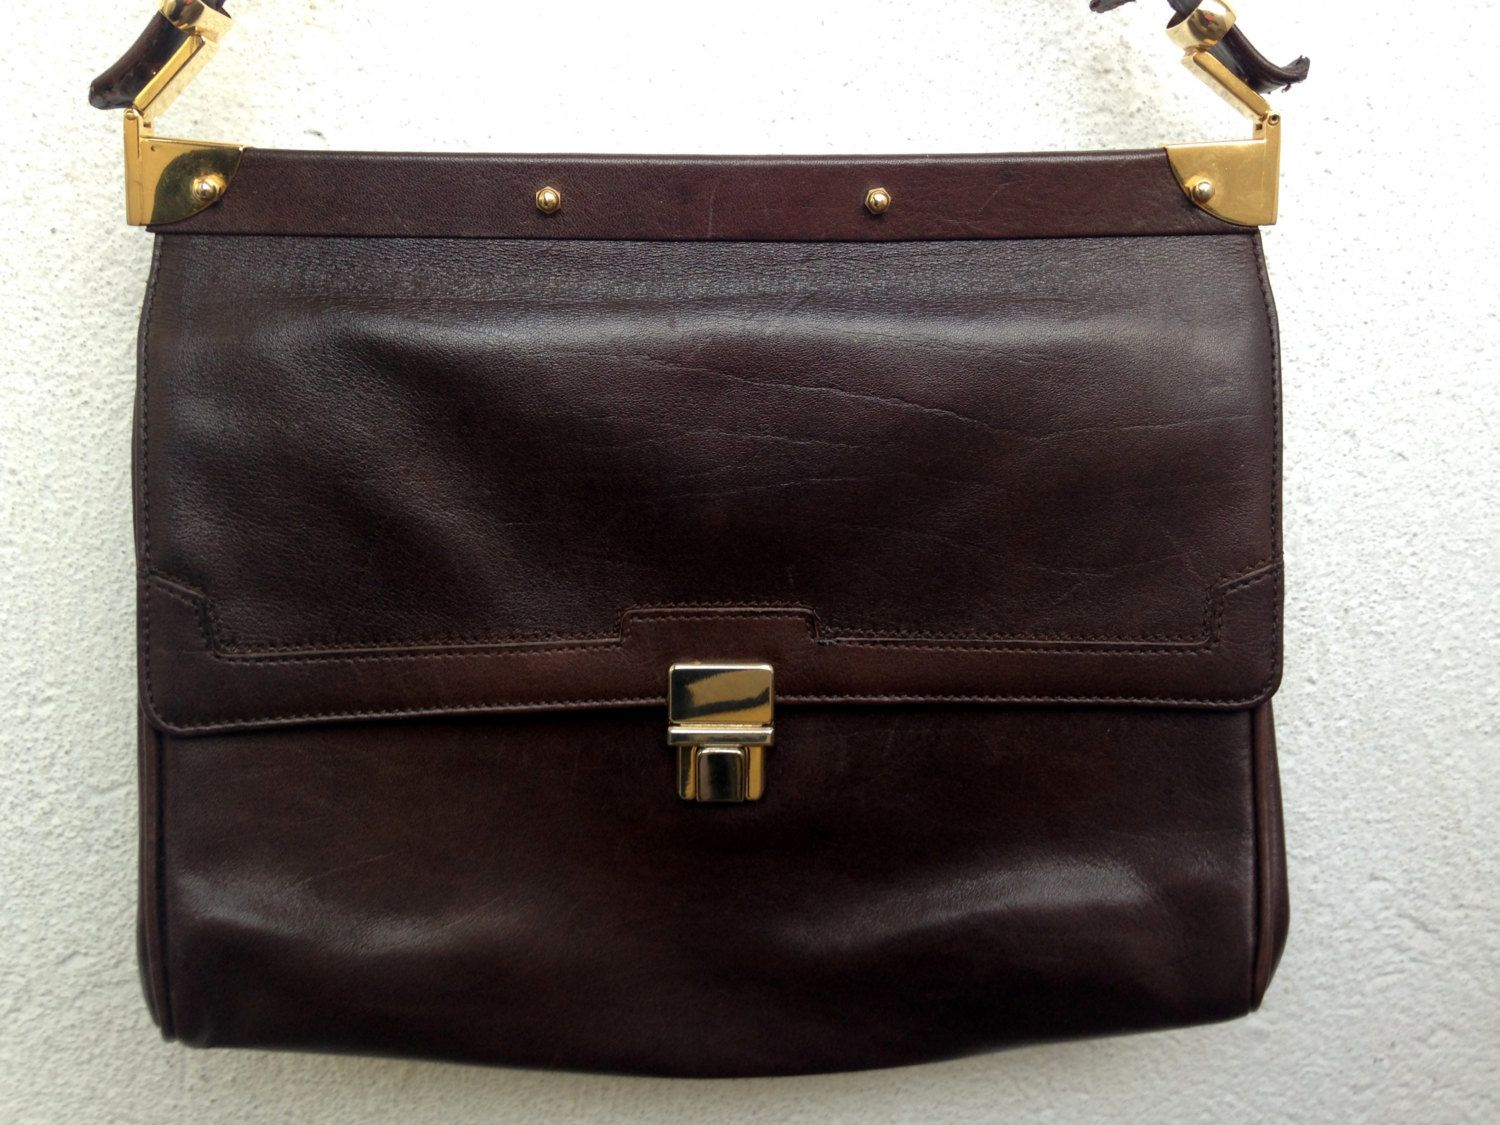 Brown Leather Satchel with Adjustable Strap 65da8d79876a1